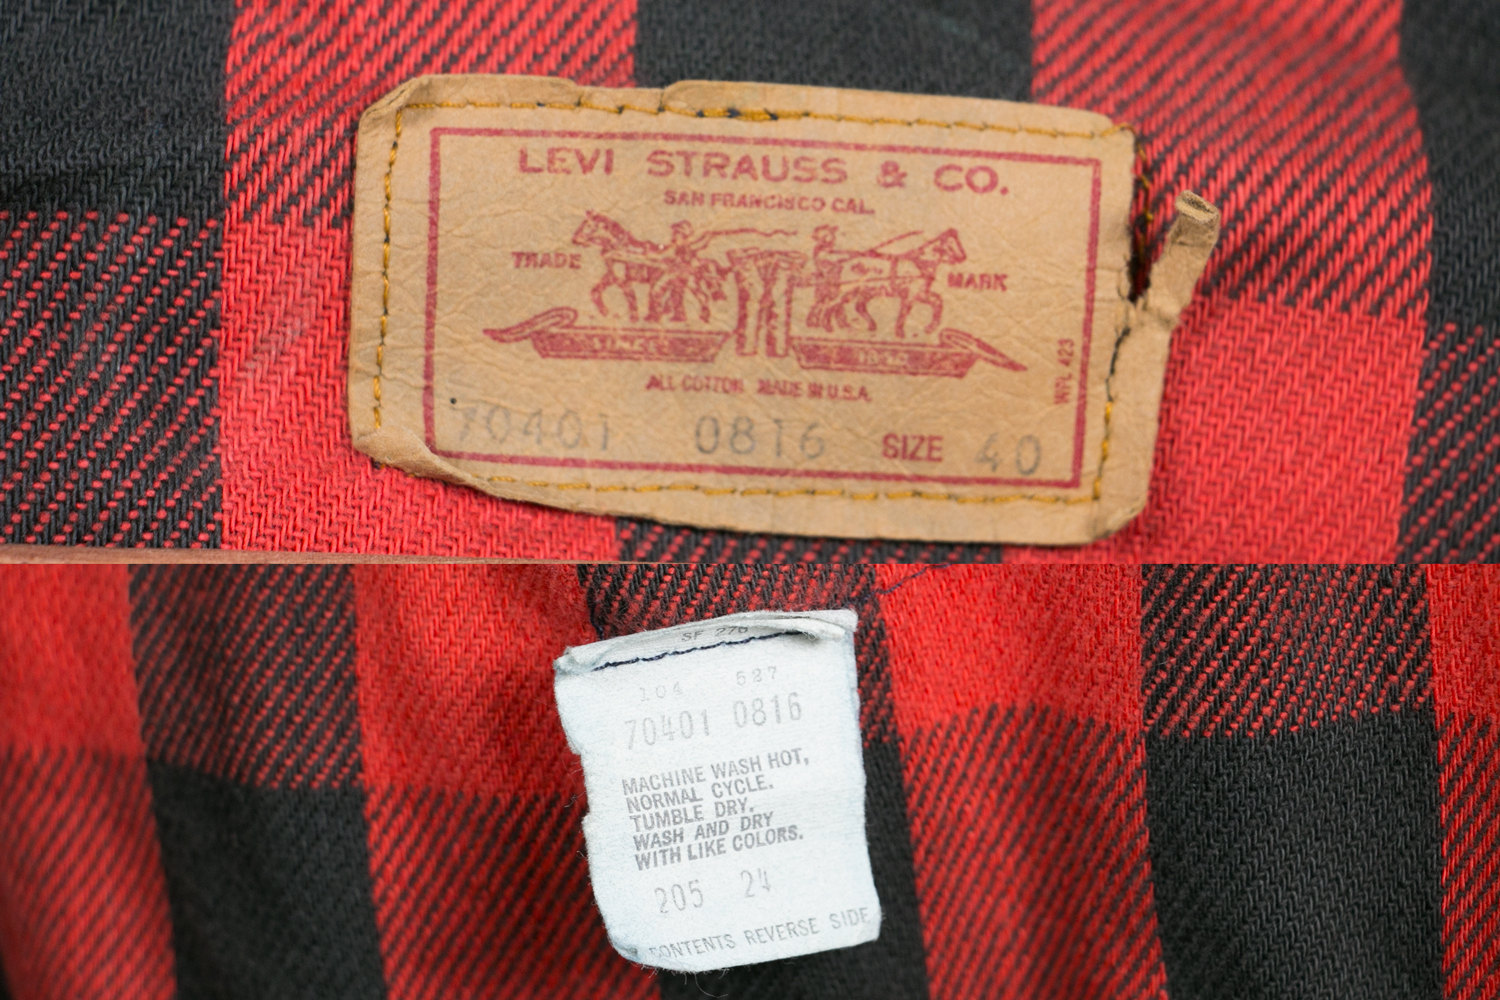 Rare Vintage Levis Denim Trucker Jacket Red Buffalo Plaid Lining Red Tab 70401 0816 Men's Sz 40 - Hipster, Indie, Rocker, Retro